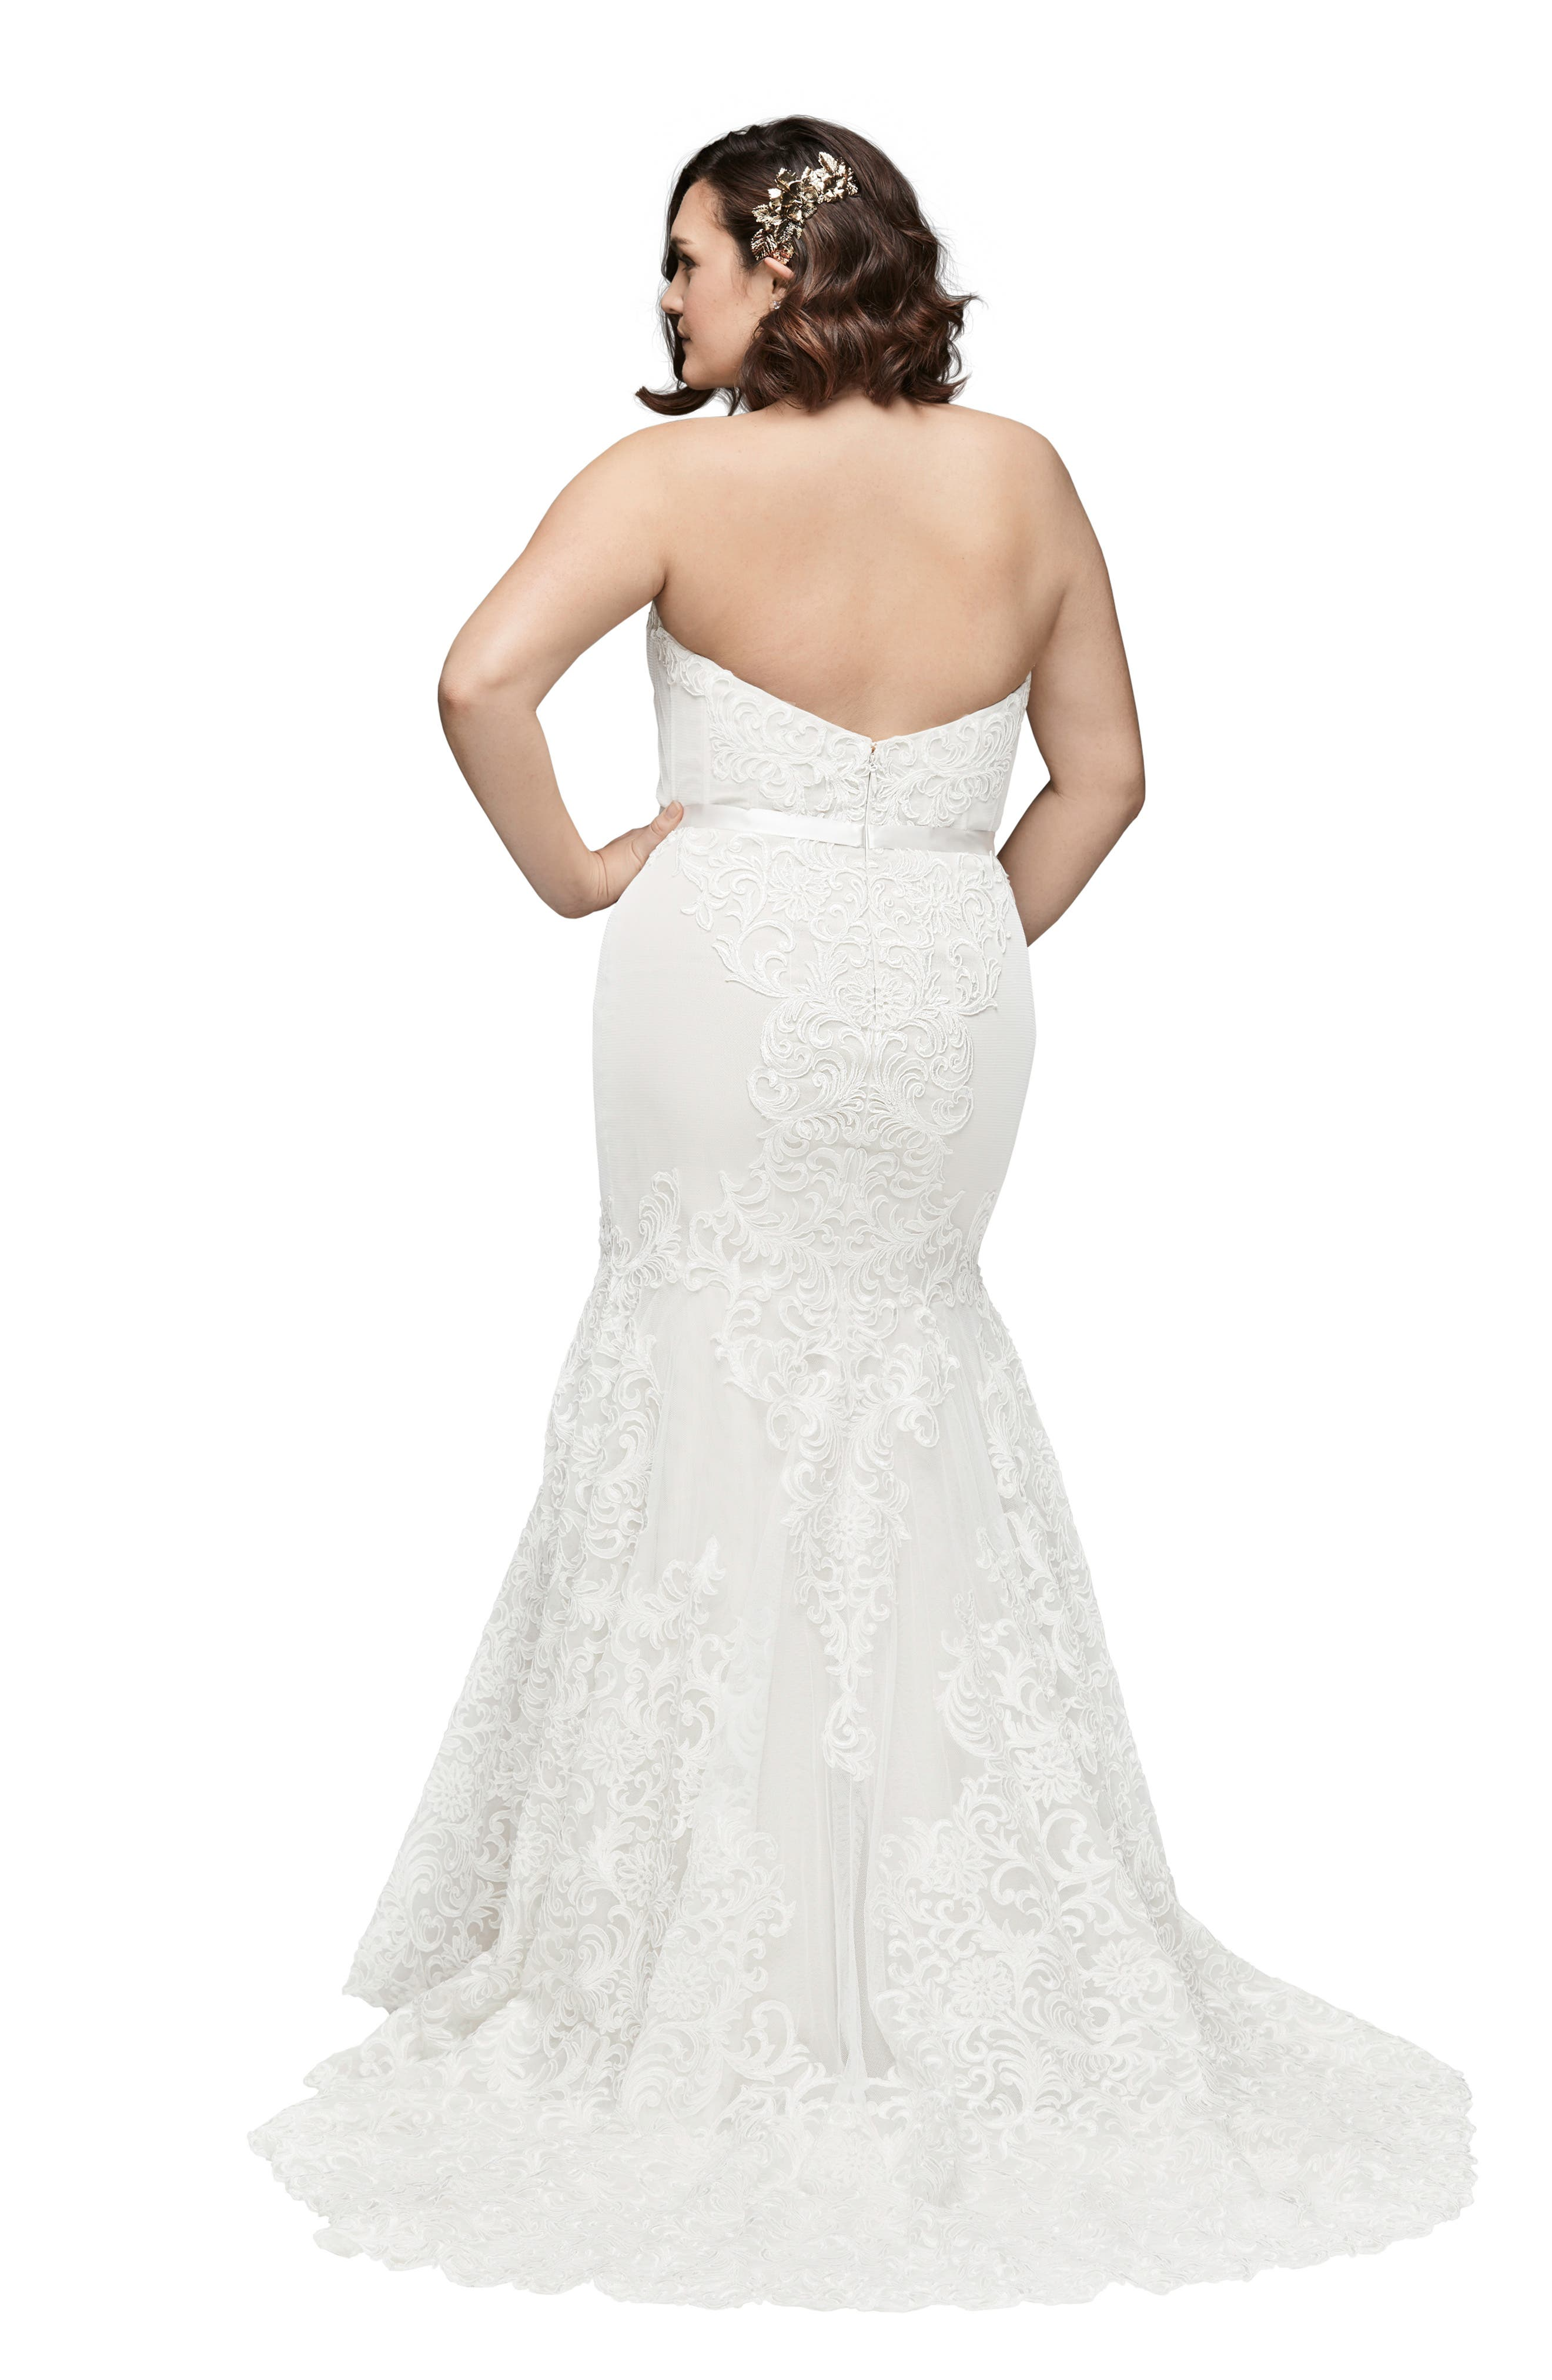 Alice Embroidered Strapless Trumpet Gown,                             Alternate thumbnail 2, color,                             IVORY/ IVORY/ GARDENIA